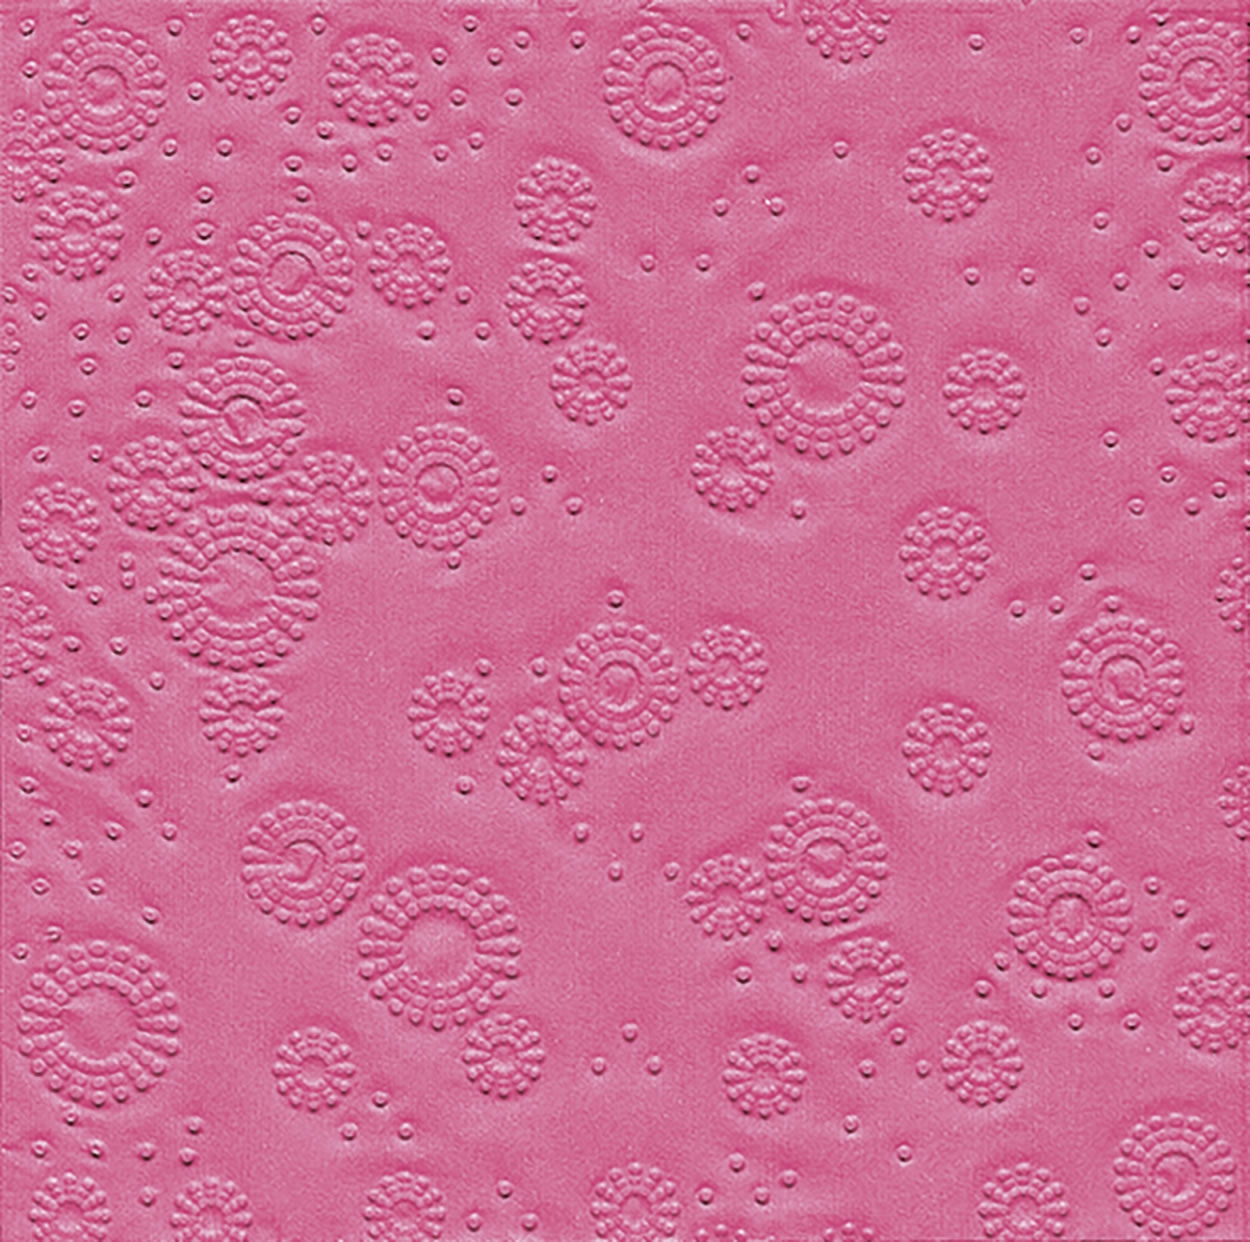 16 Servietten - 33 x 33 cm Moments Uni pink - geprägt,   geprägte Servietten,   geprägte Servietten,  Everyday,  lunchservietten